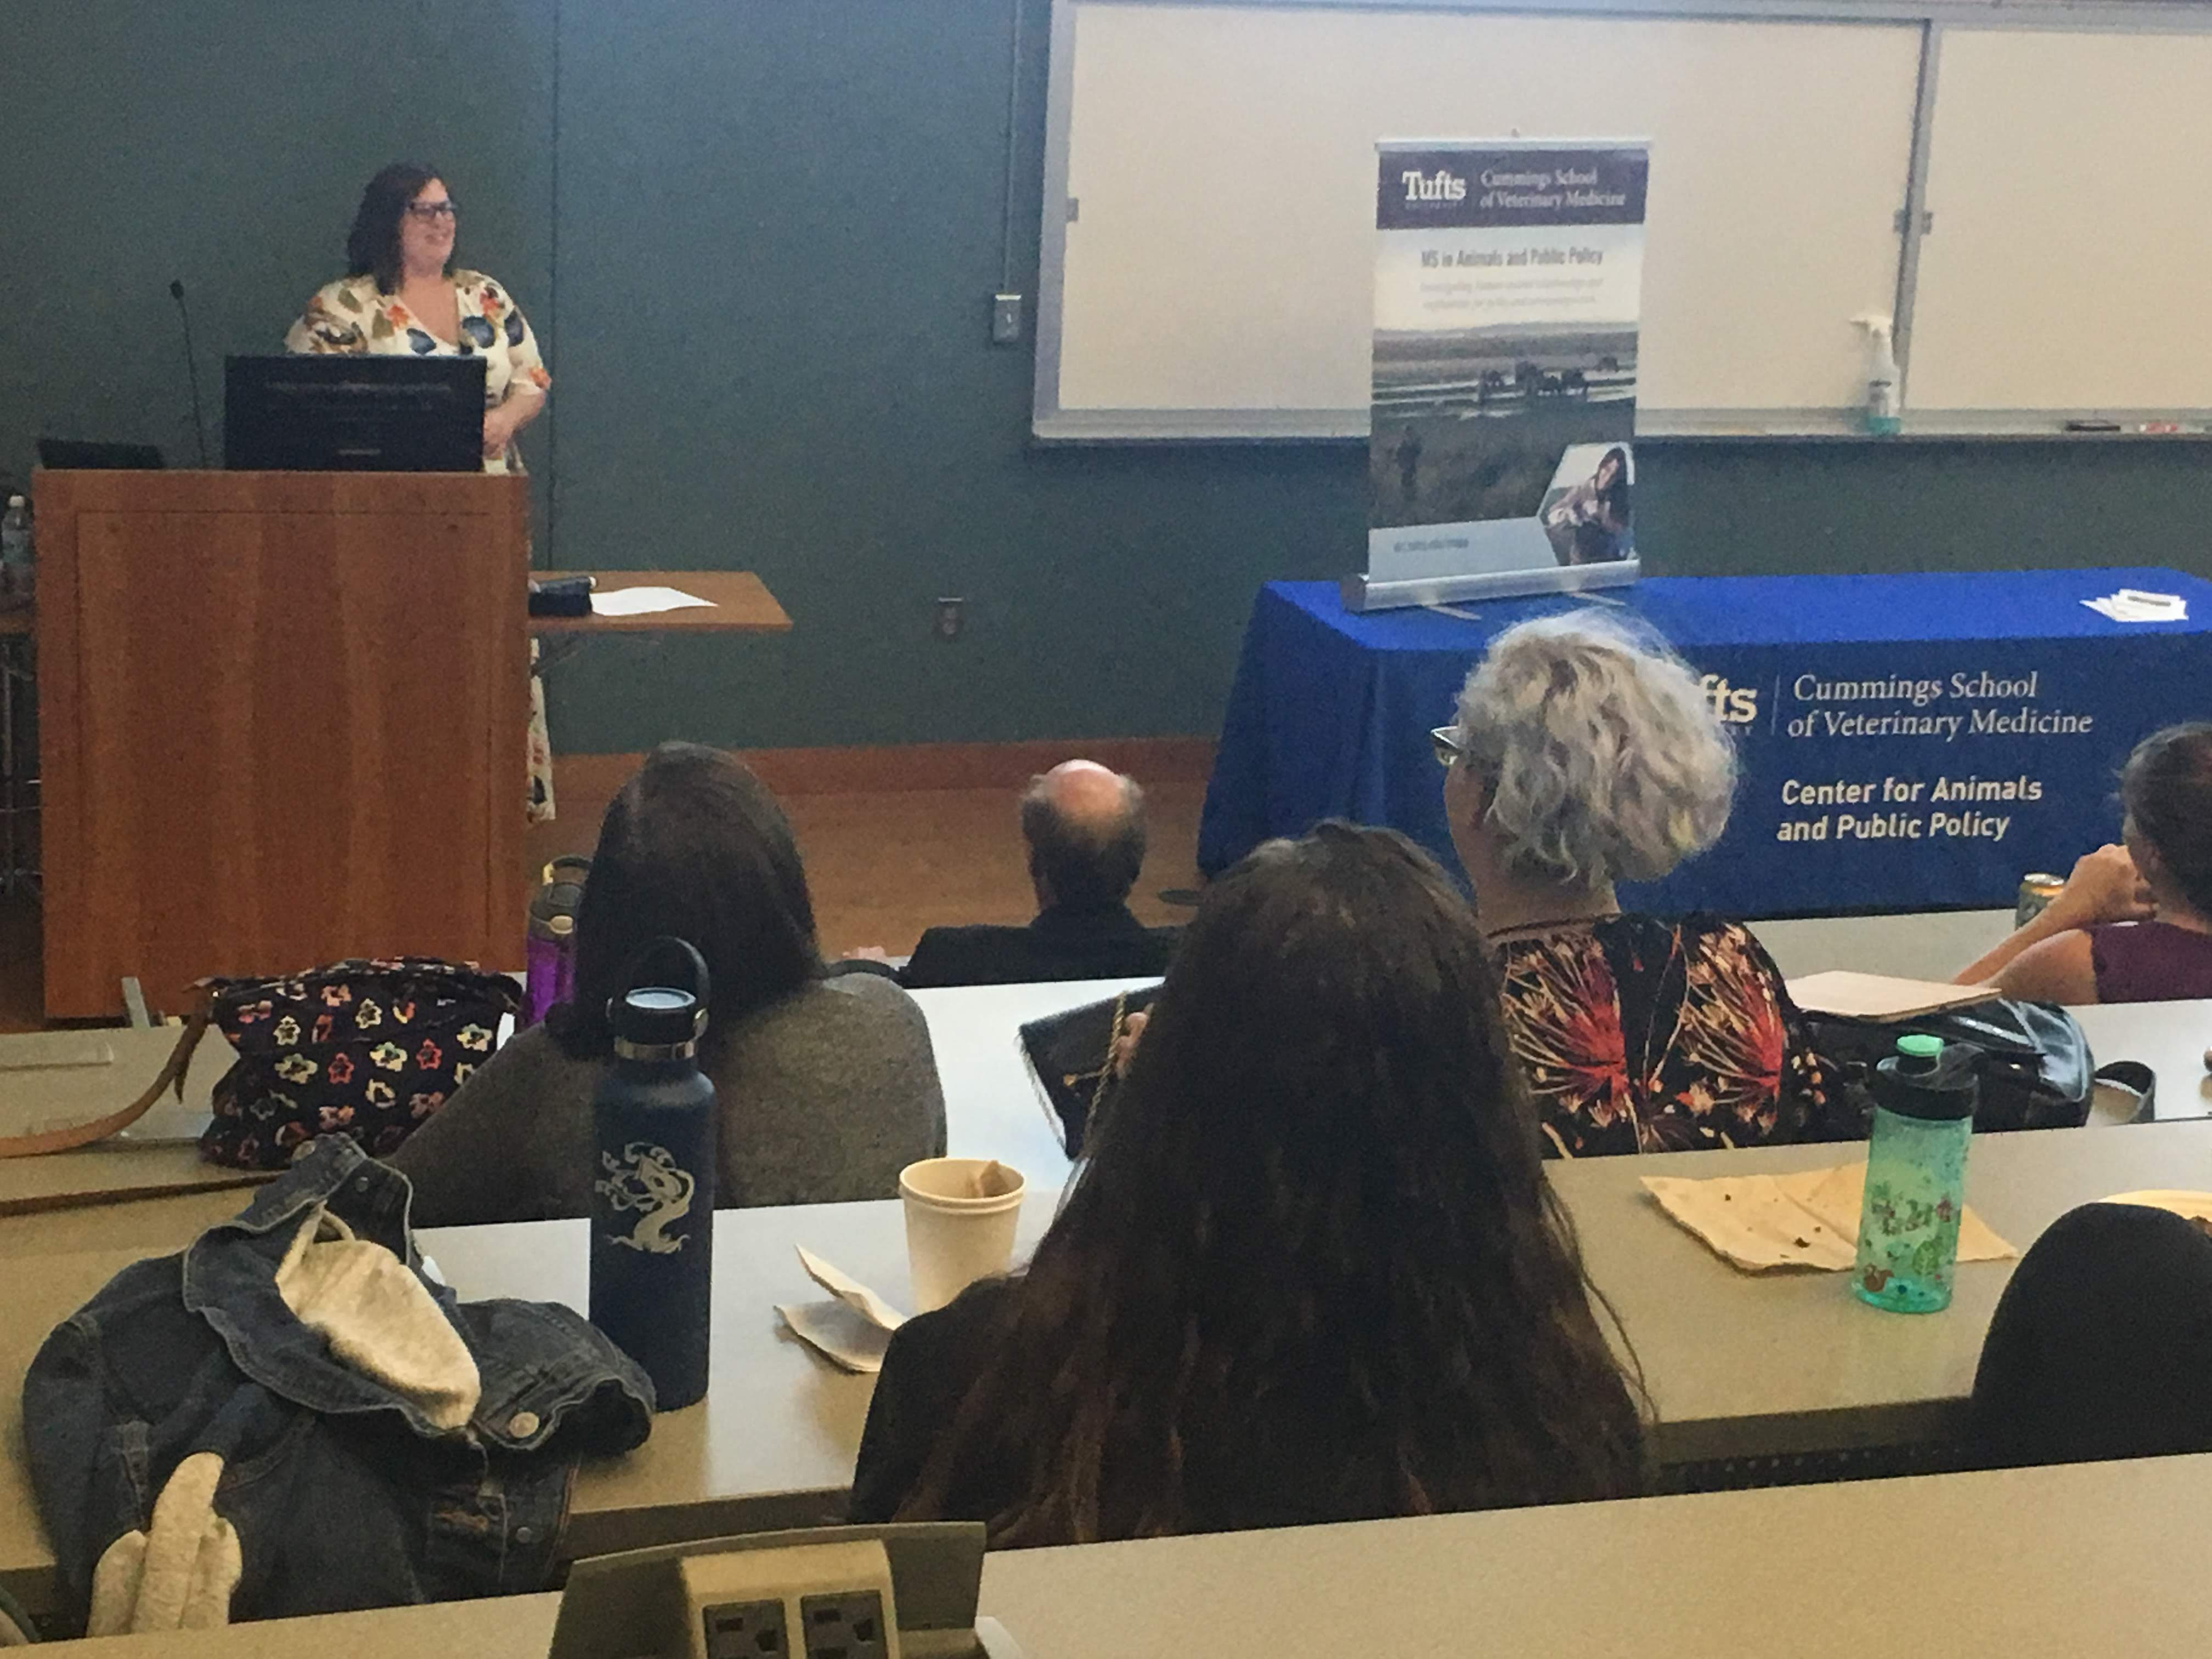 """Johanna Rahkonen presenting """"ASPCA Field Investigations and Response: A Hot Take on Volcanoes and Climate Change"""" at Cummings School of Veterinary Medicine's Master of Science in Animals and Public Policy Class of 2018 Presentations on Saturday, September 8, 2018"""